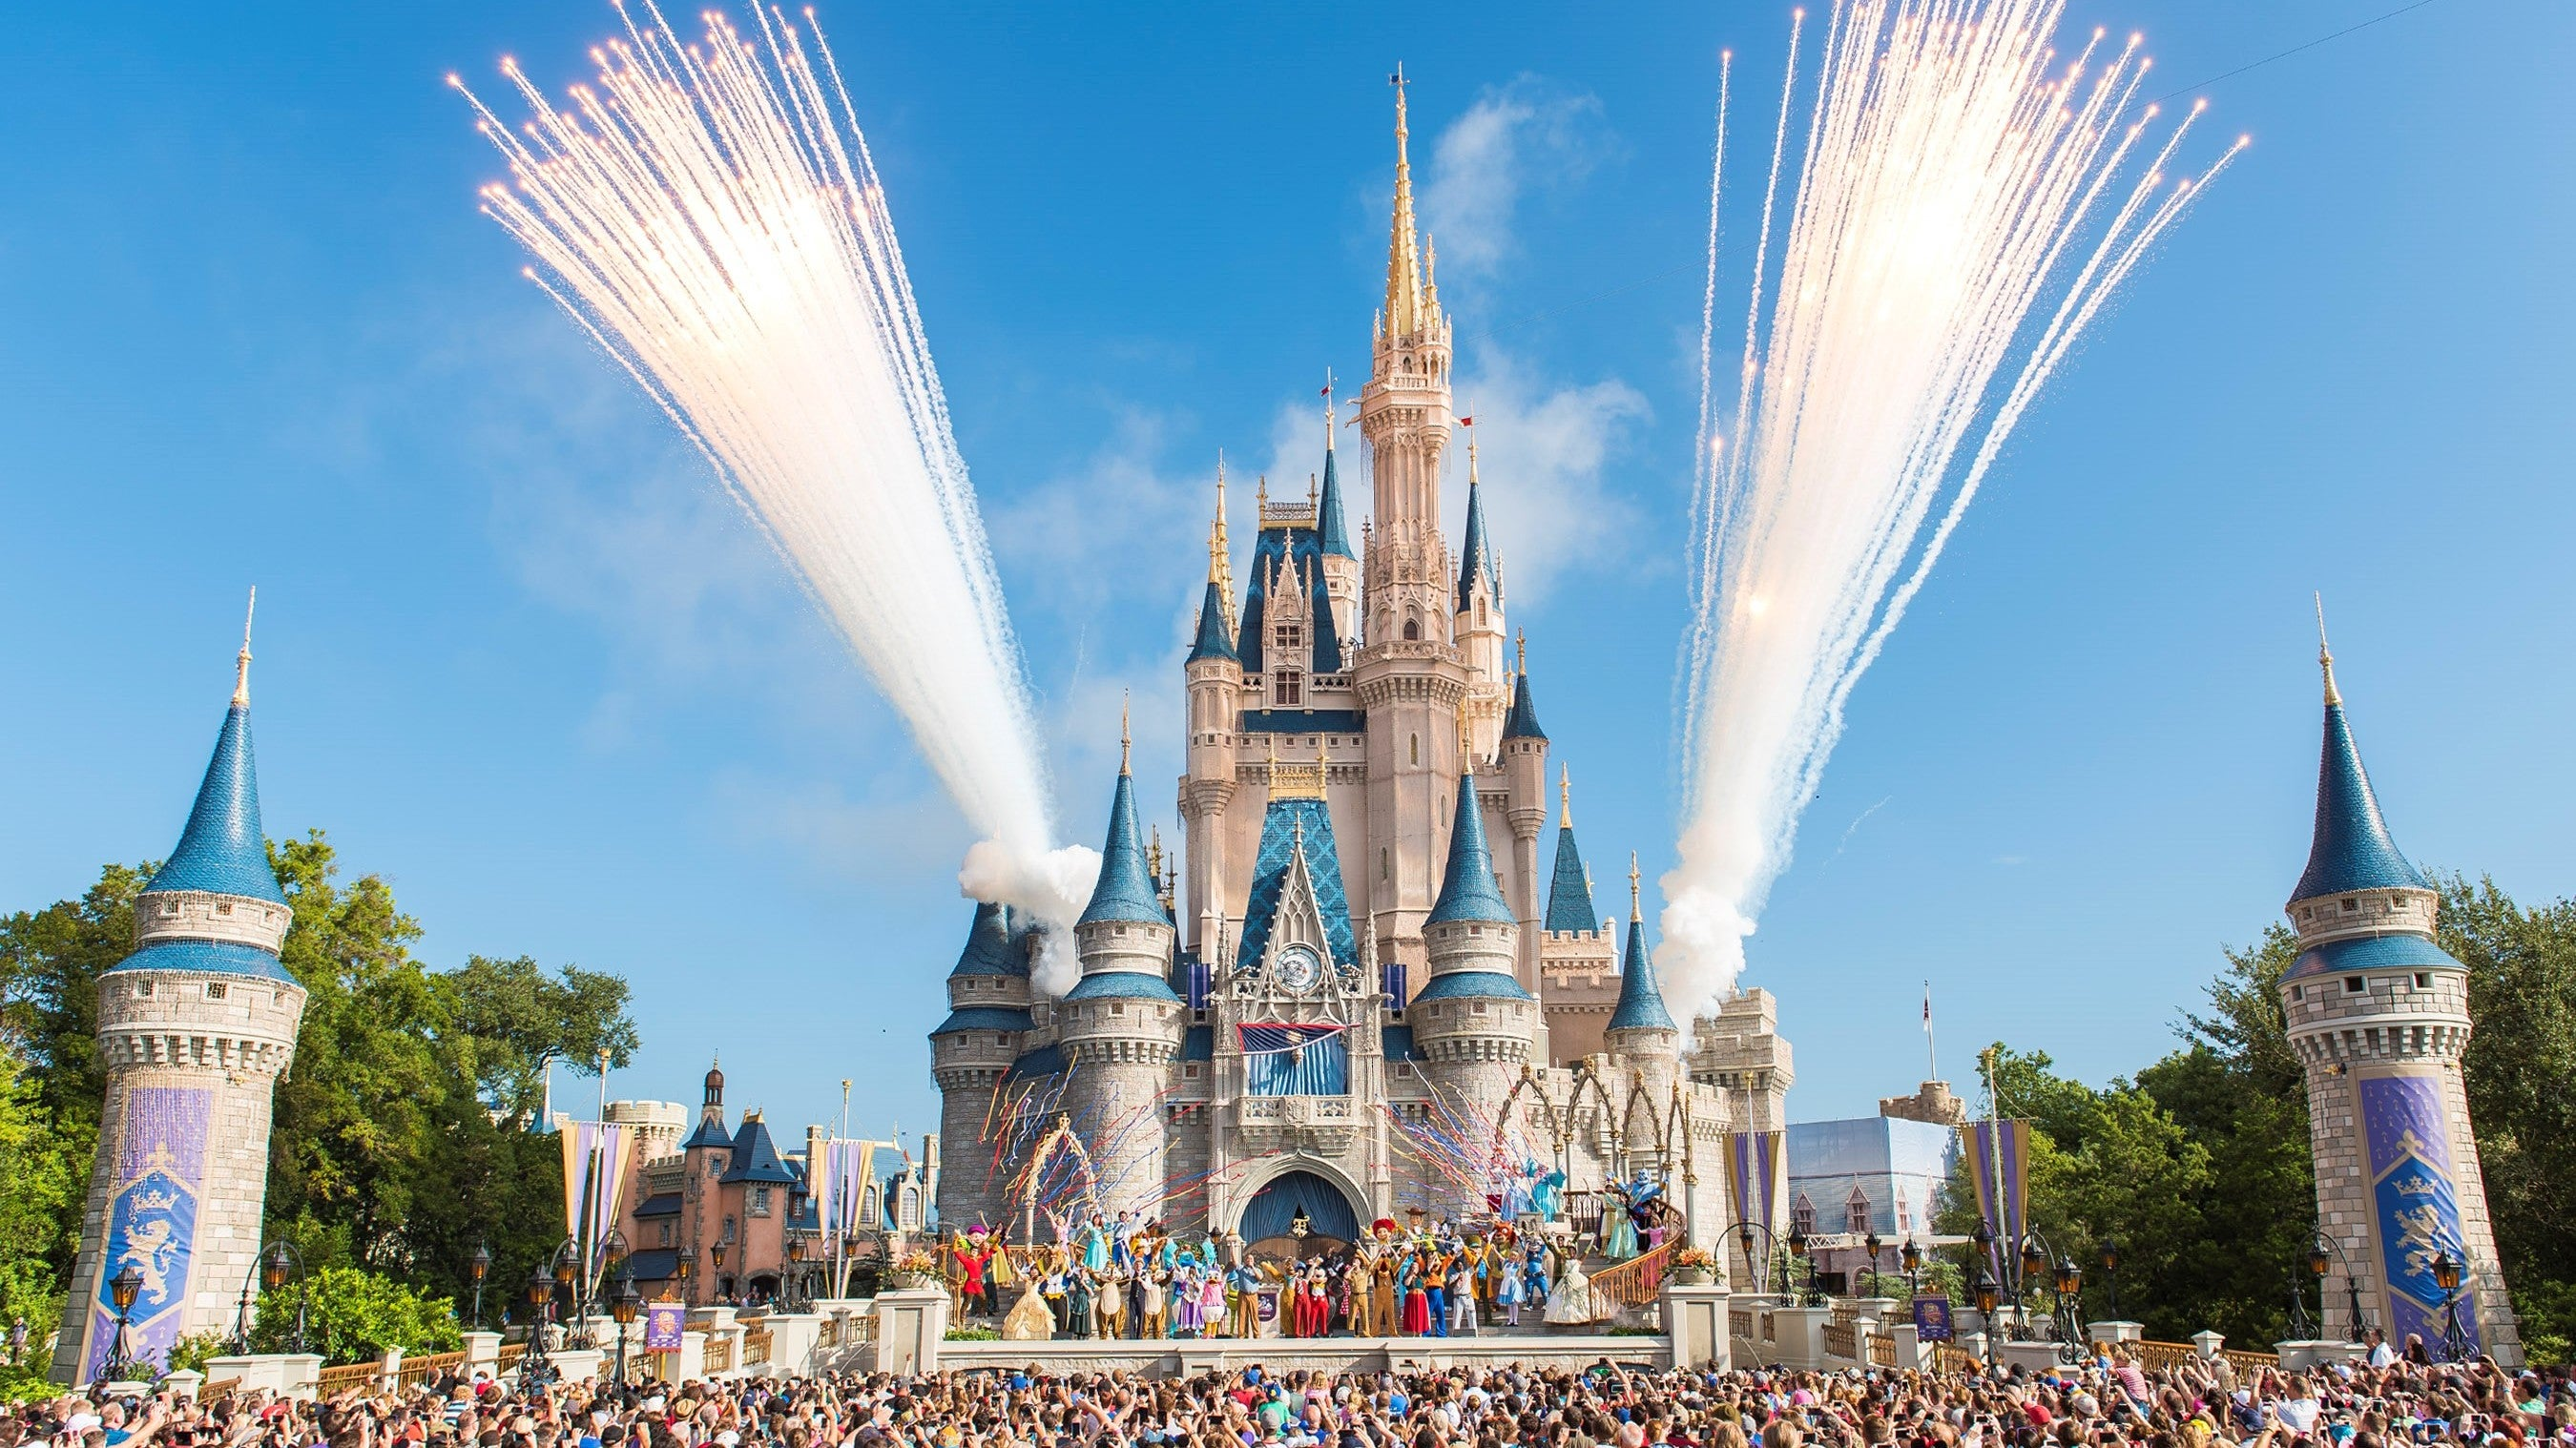 The Urban Legend About Scattering Human Ashes At Disney Is True, And It's Worse Than We Thought